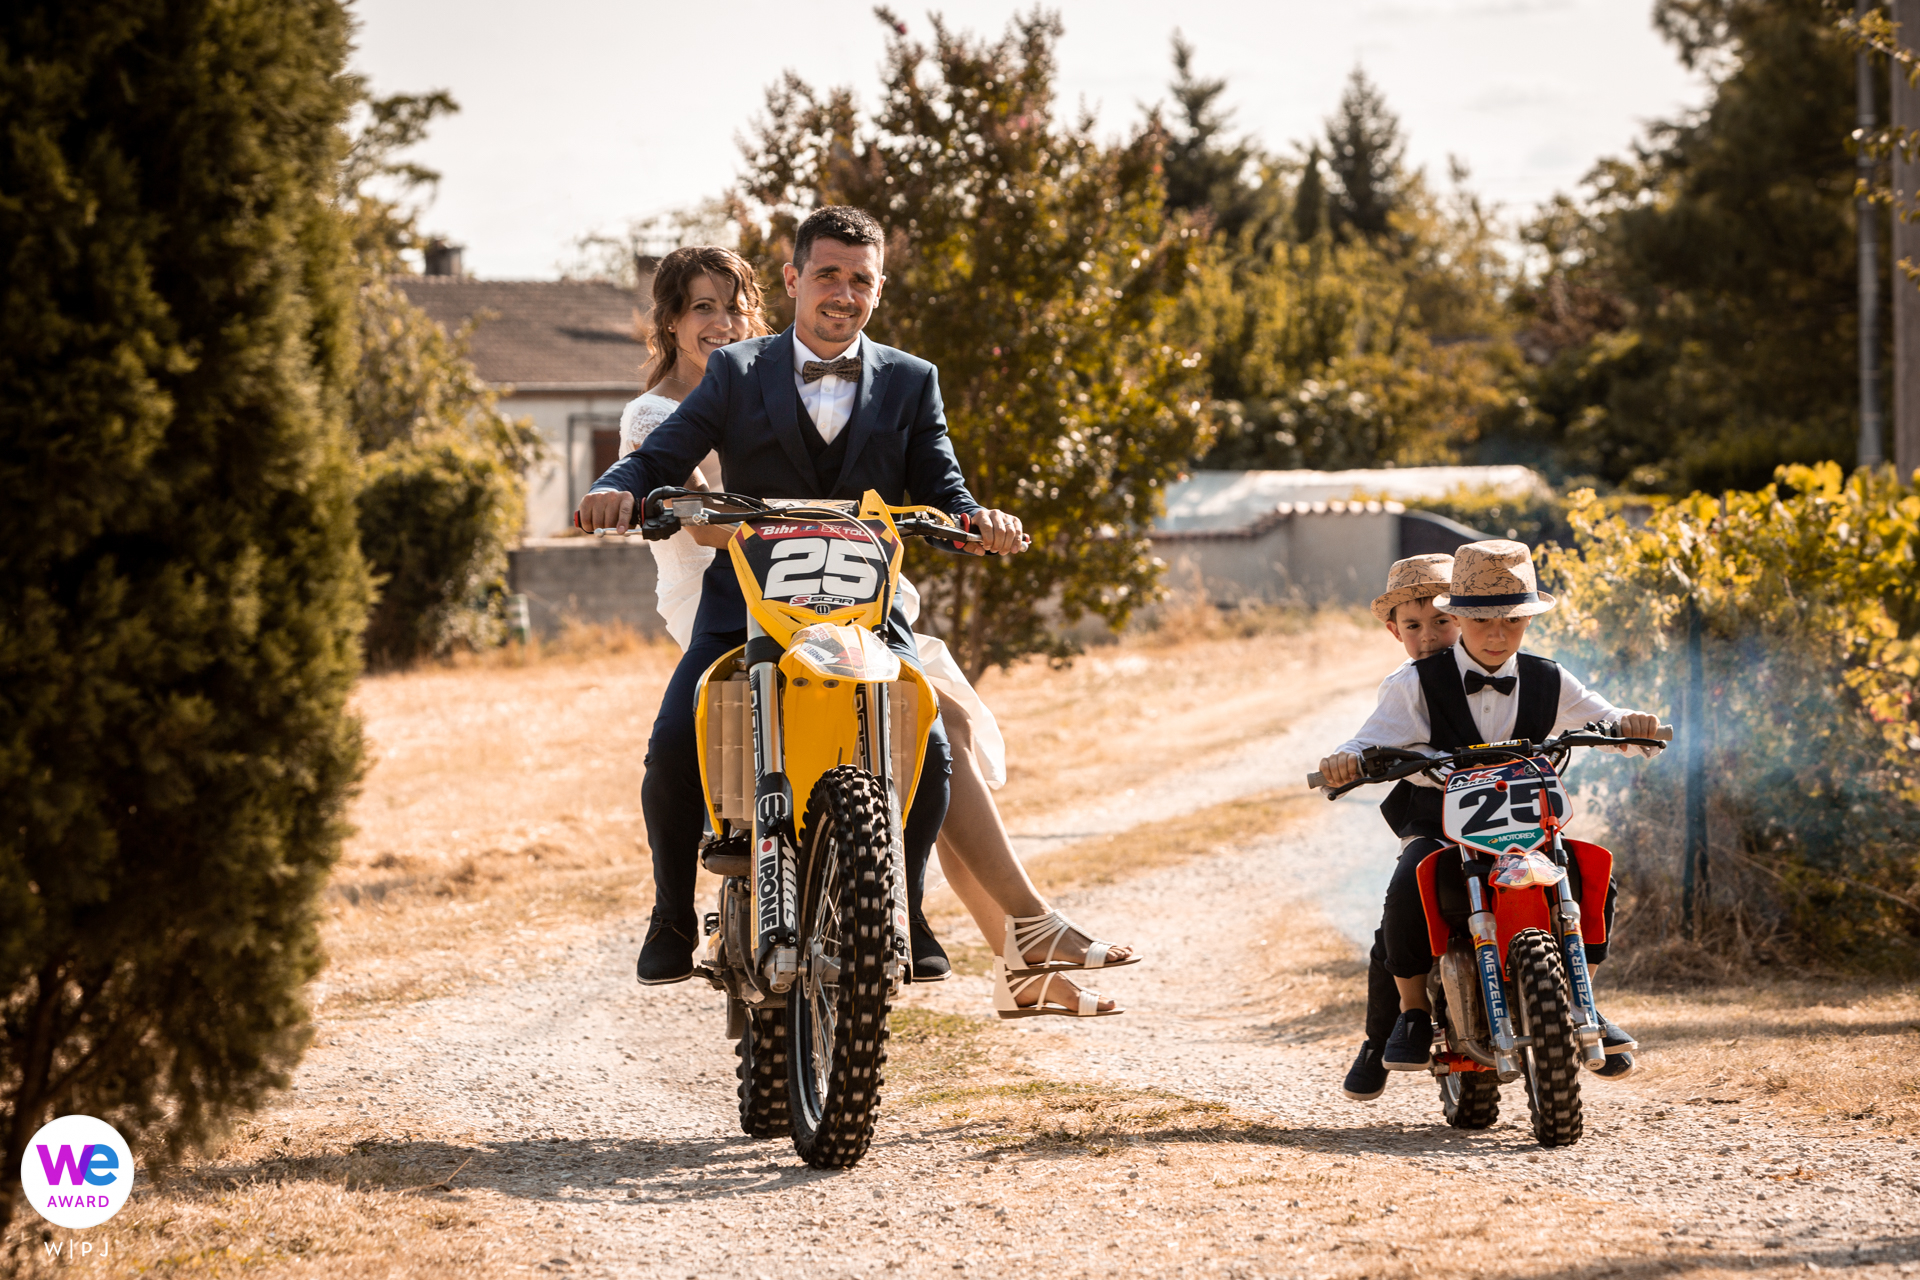 Lescure, Tarn, France Wedding Photography | The couple could make it to the ceremony by motorbikes through a small path with their sons